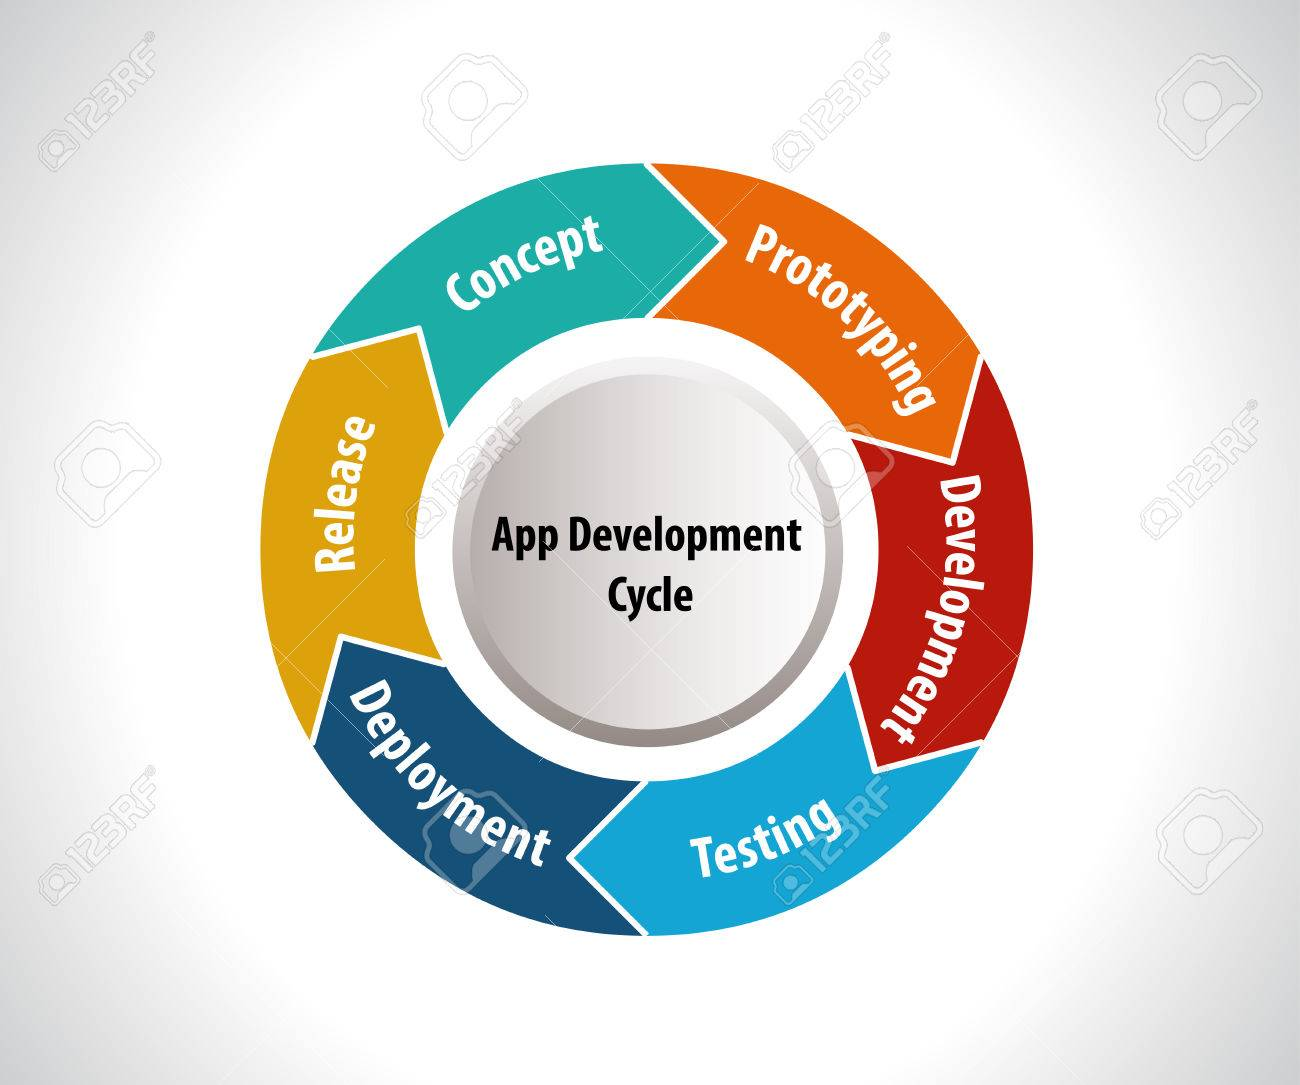 Software Development Life Cycle, app development cycle -vector